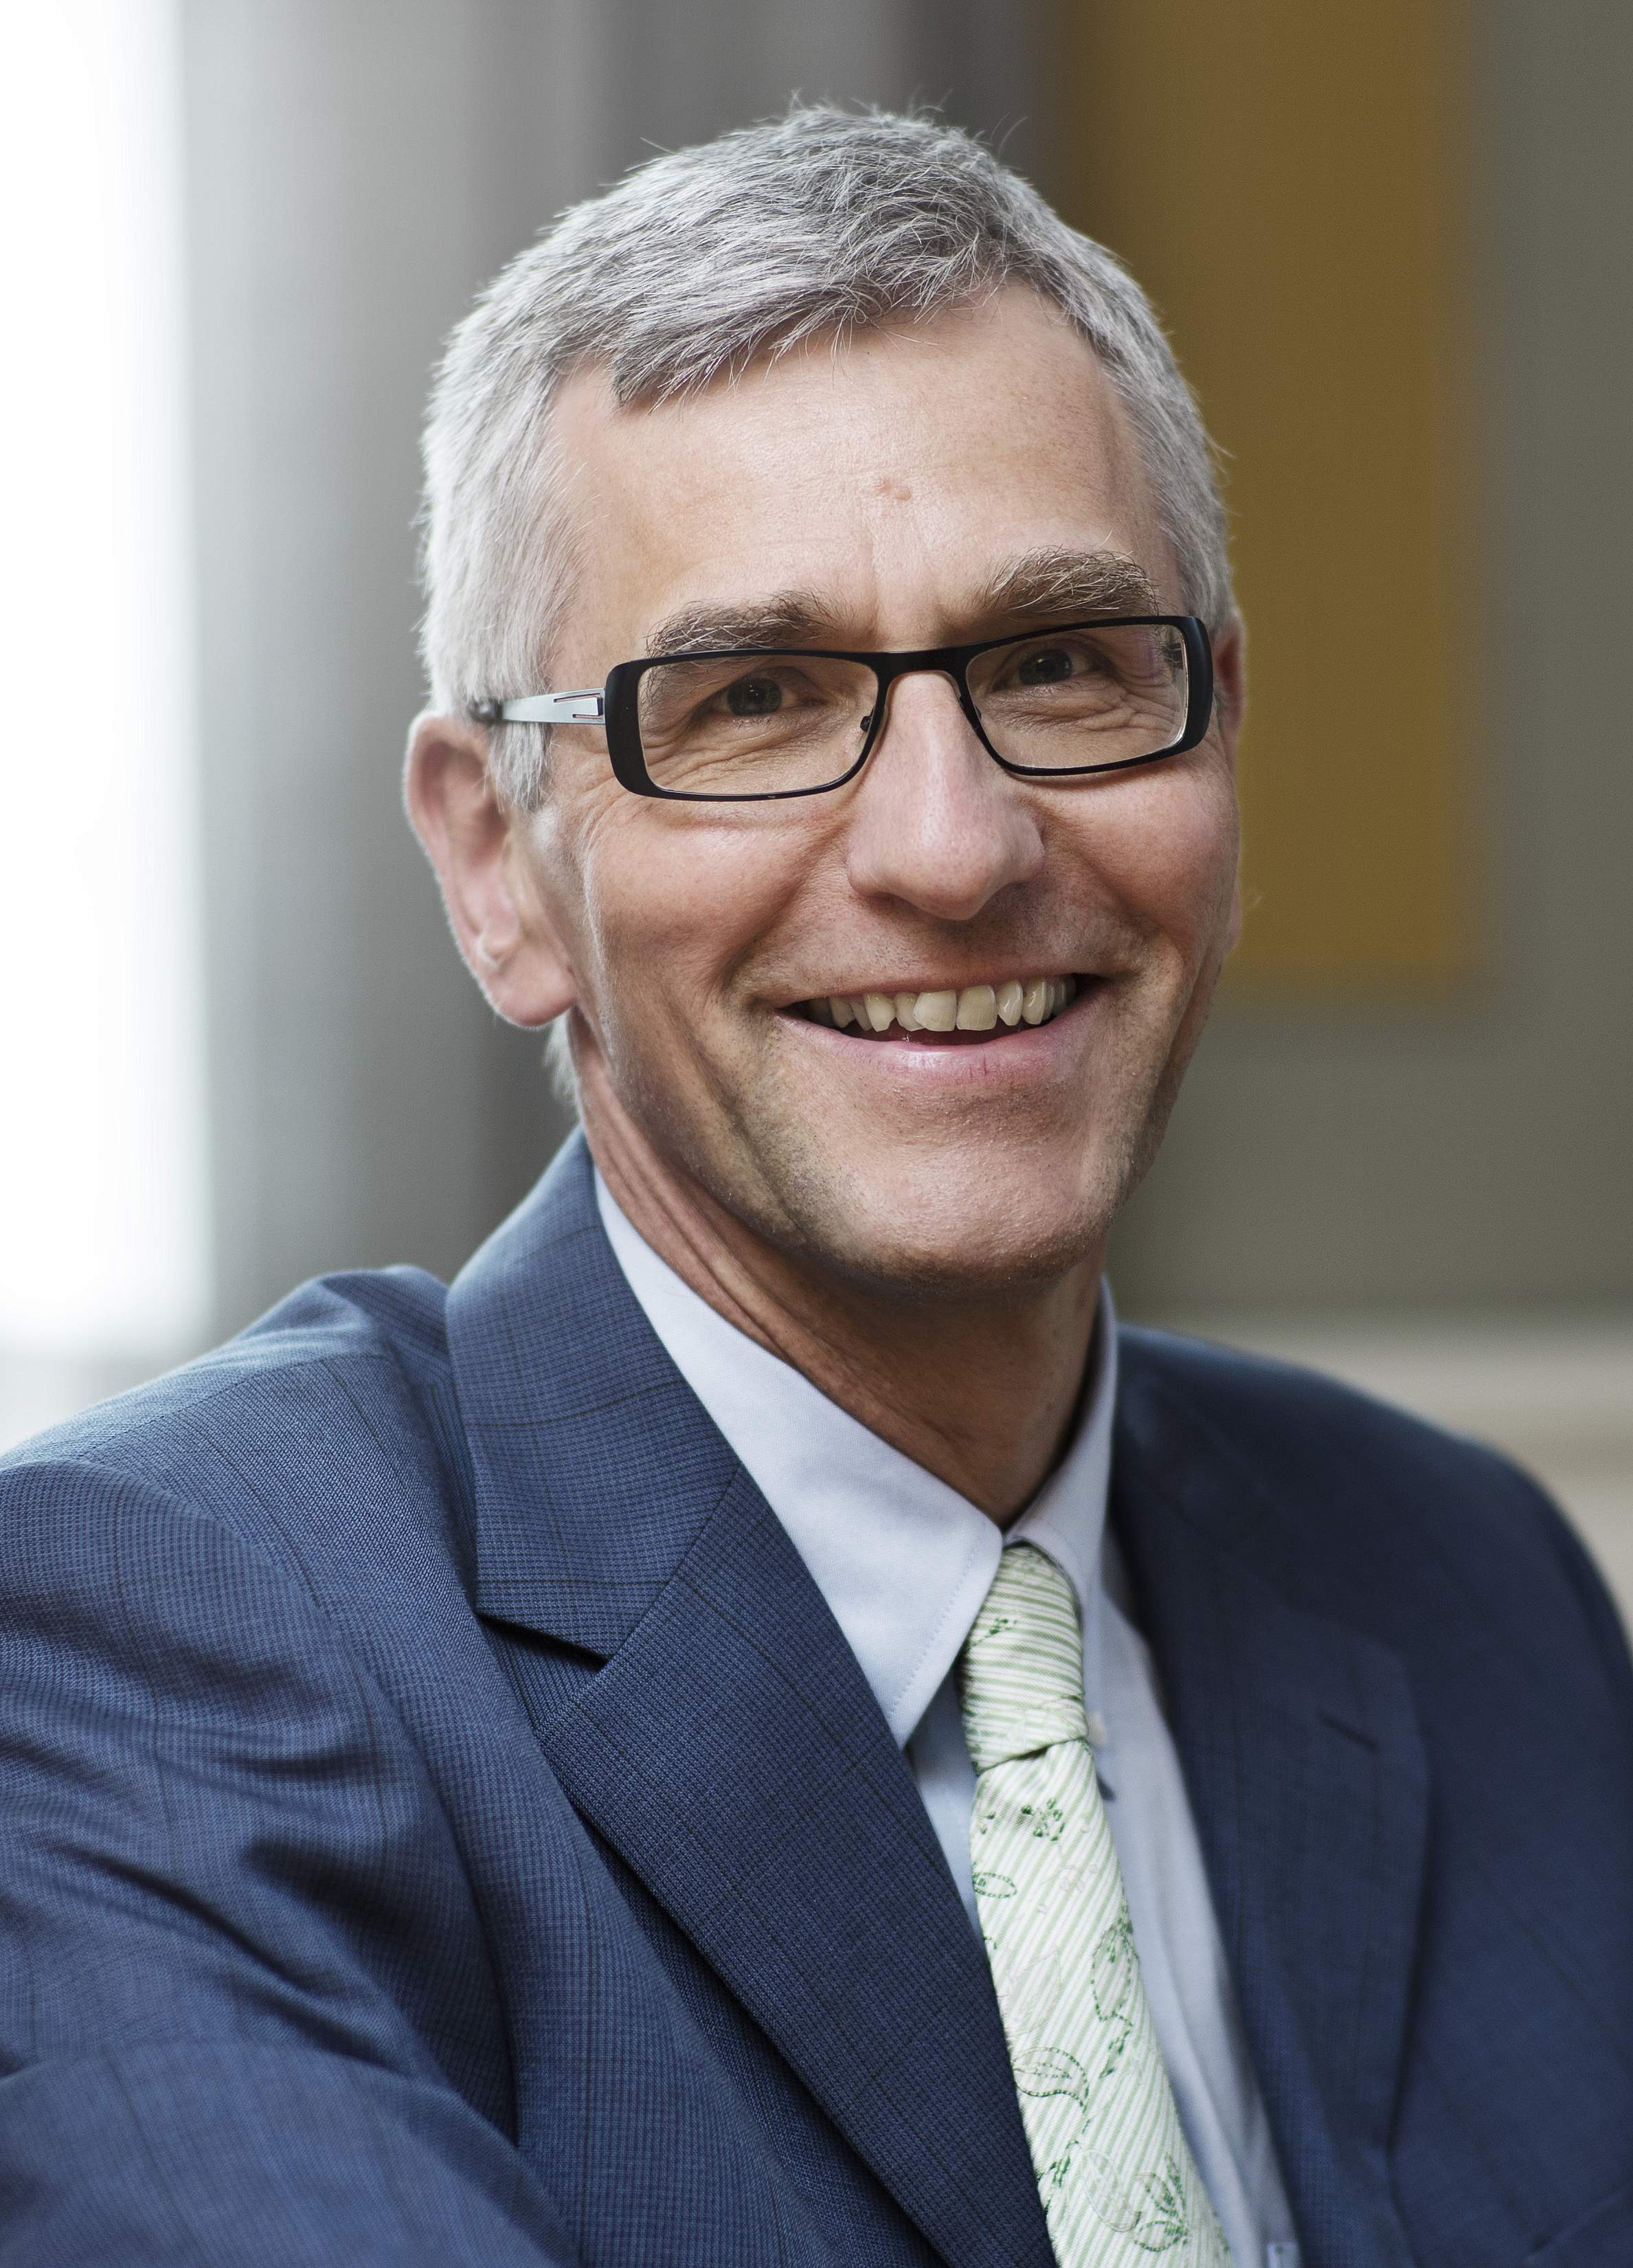 CEO of the DNRF, Professor Søren-Peter Olesen (Photo: DNRF)